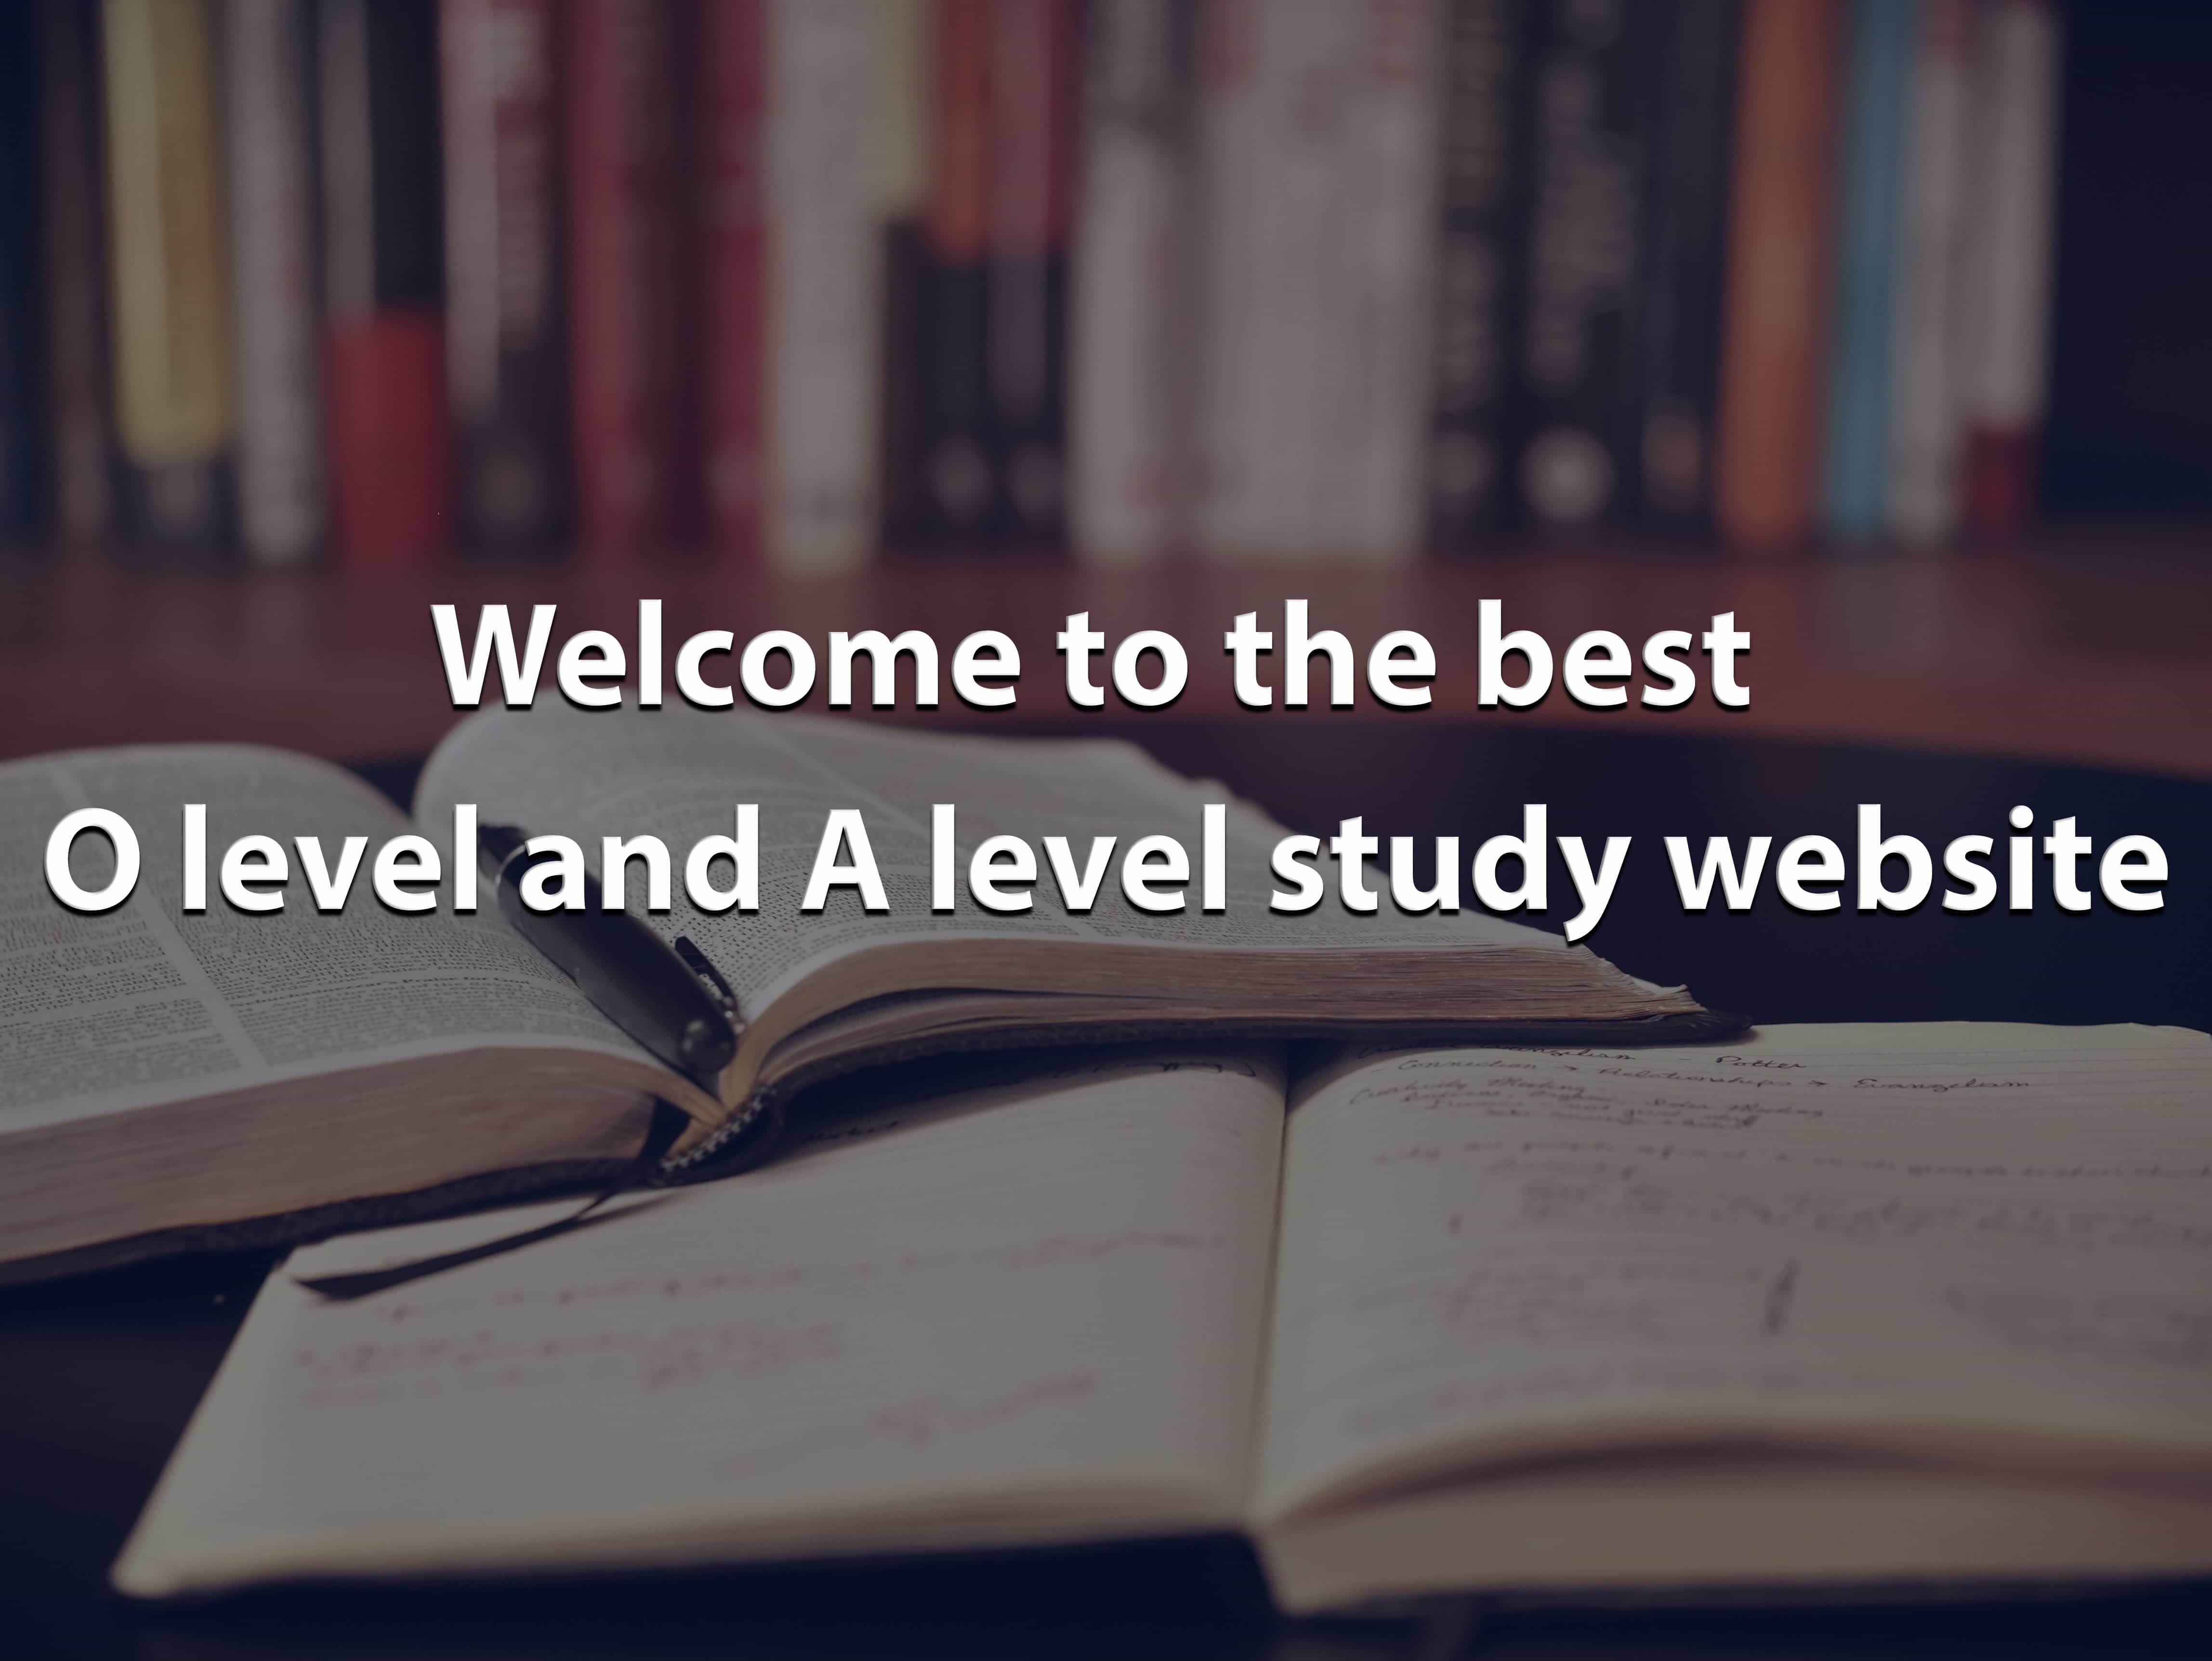 GCE Compilation - All Gce O and A level Resources